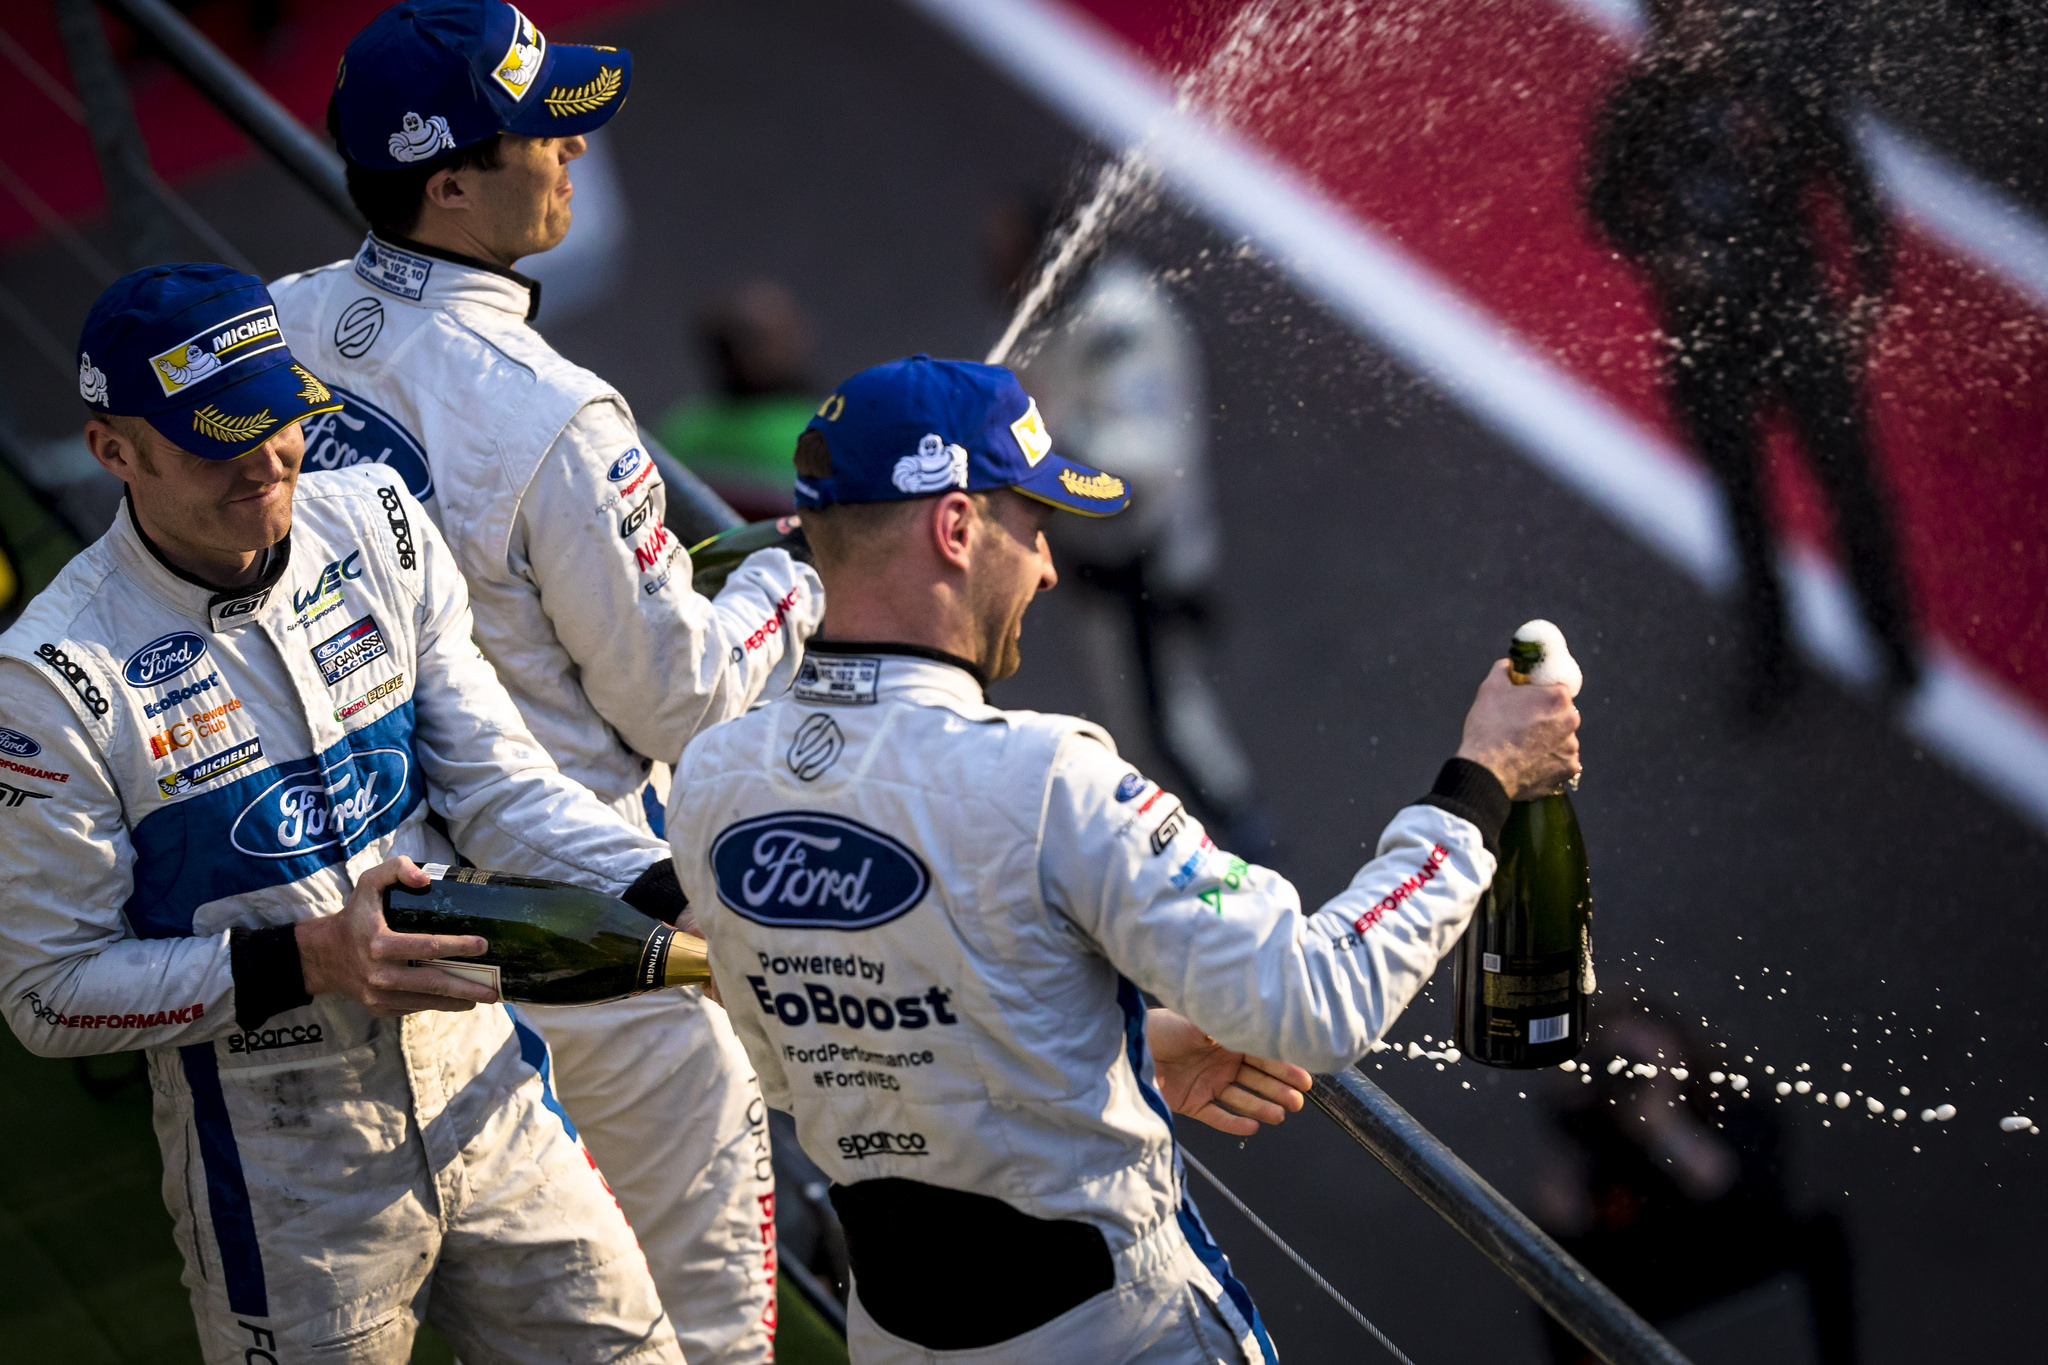 Sponsor News: Ford Chip Ganassi Racing takes podium finish at Spa